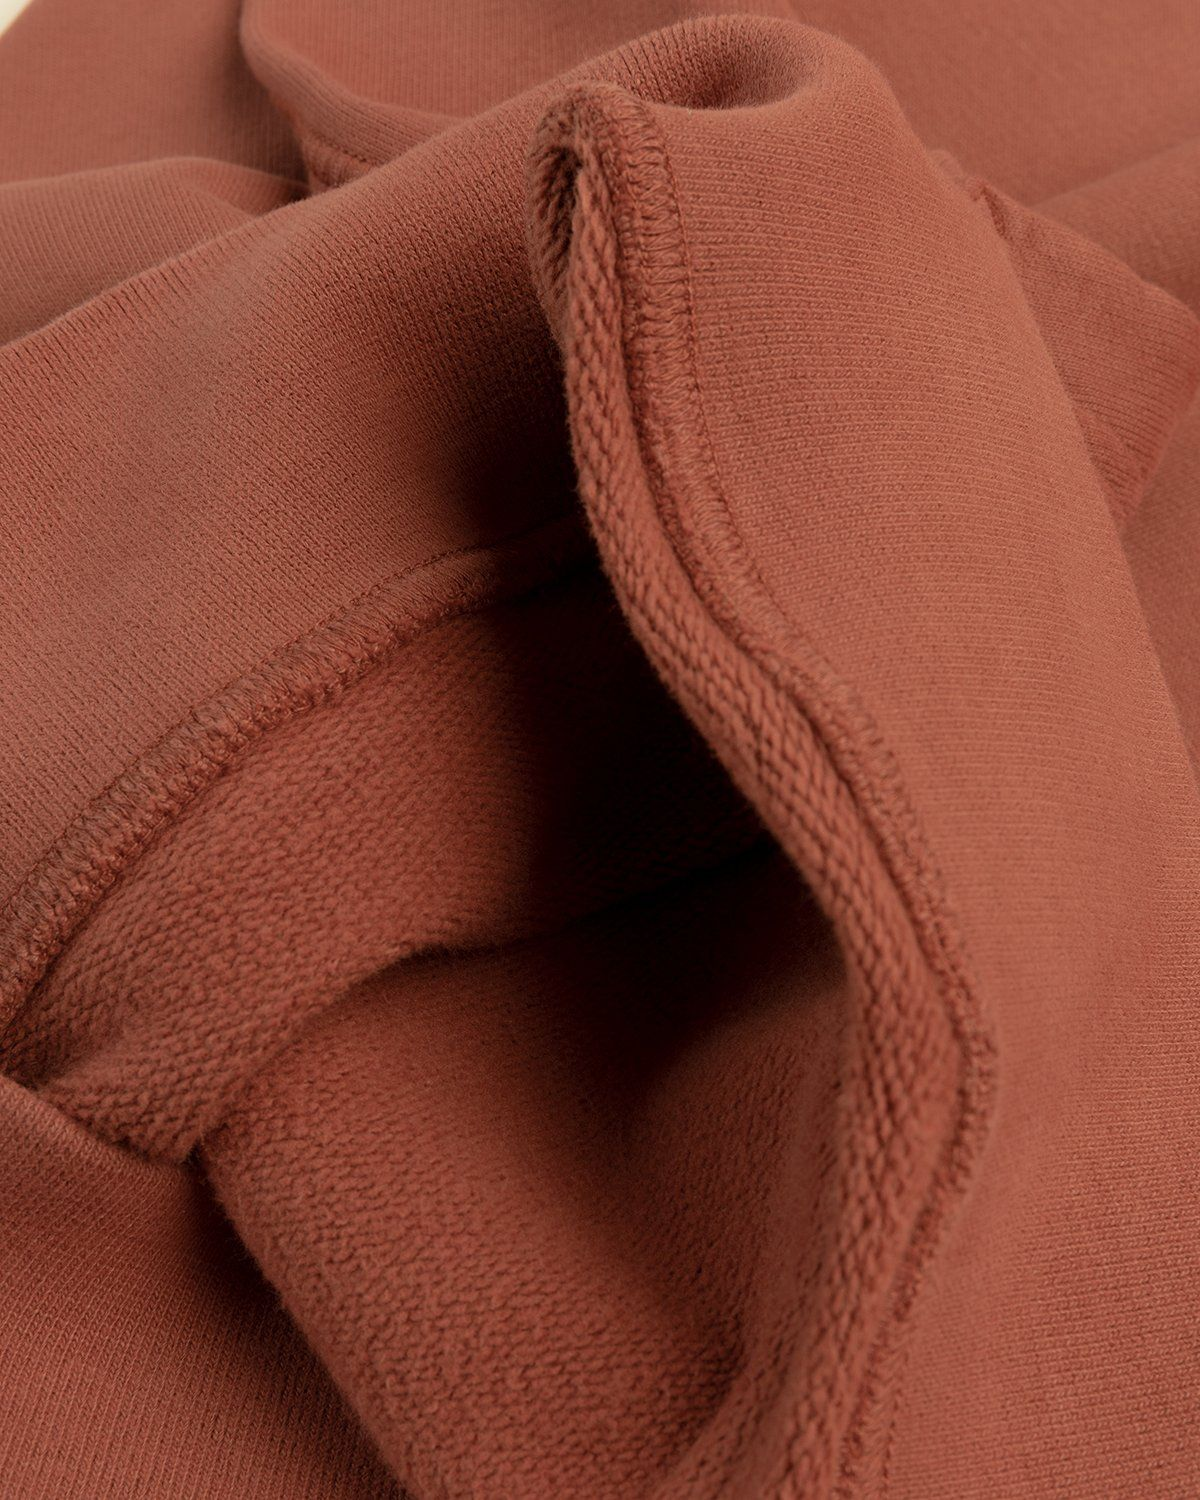 Stone Island – Dust Color Treatment Hoodie Brick Red - Image 5